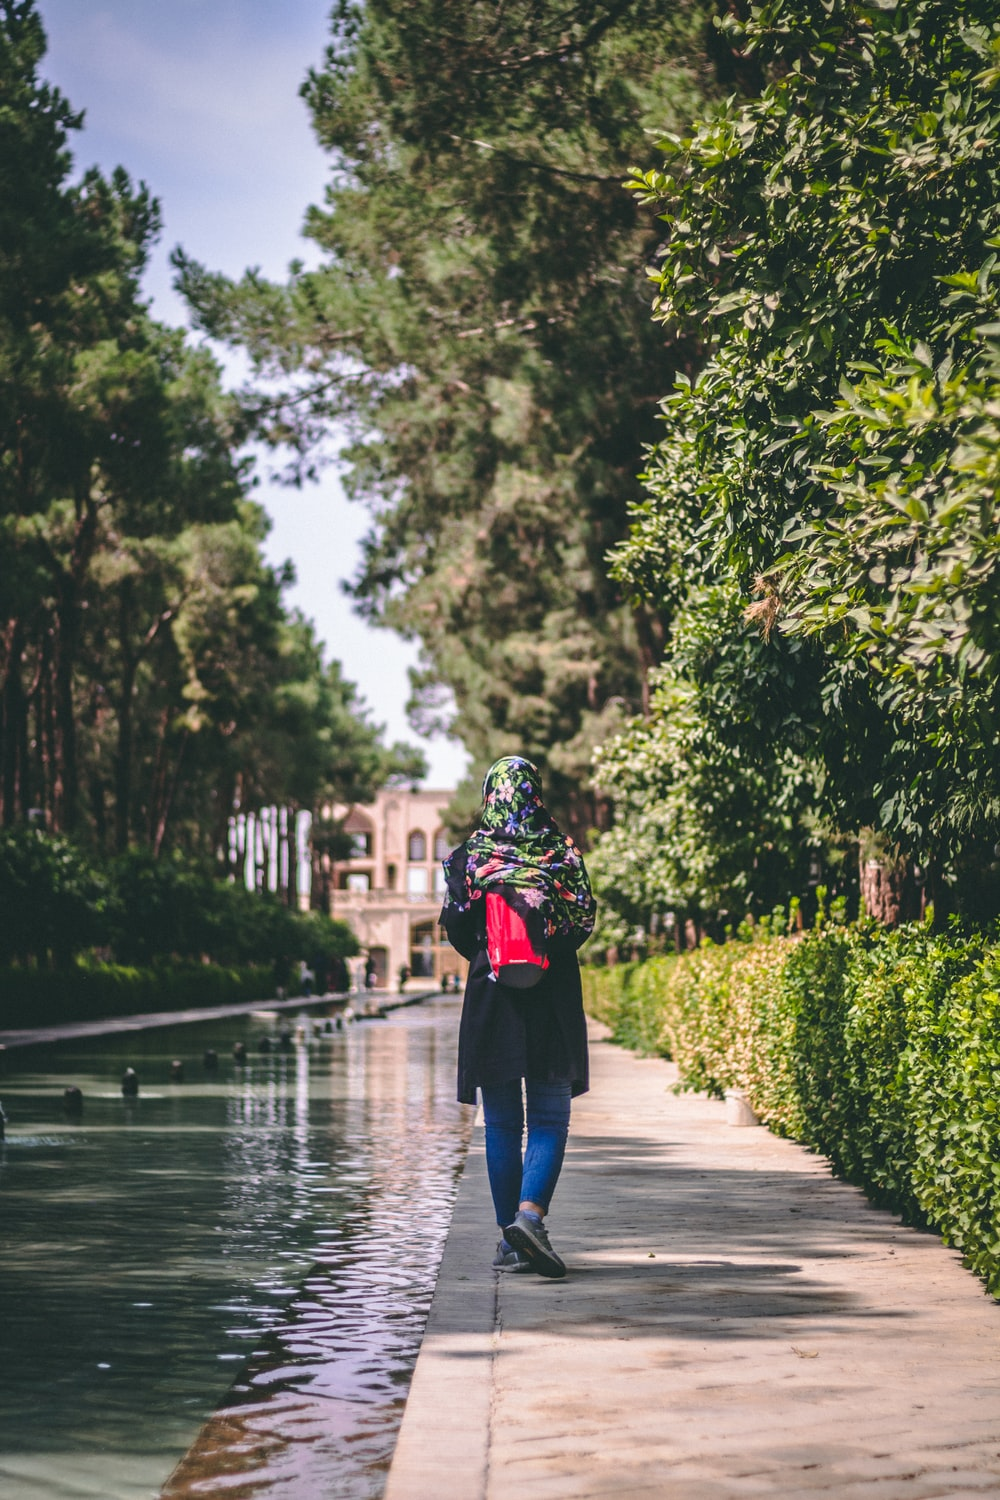 woman in black top walking by hedge and body of water